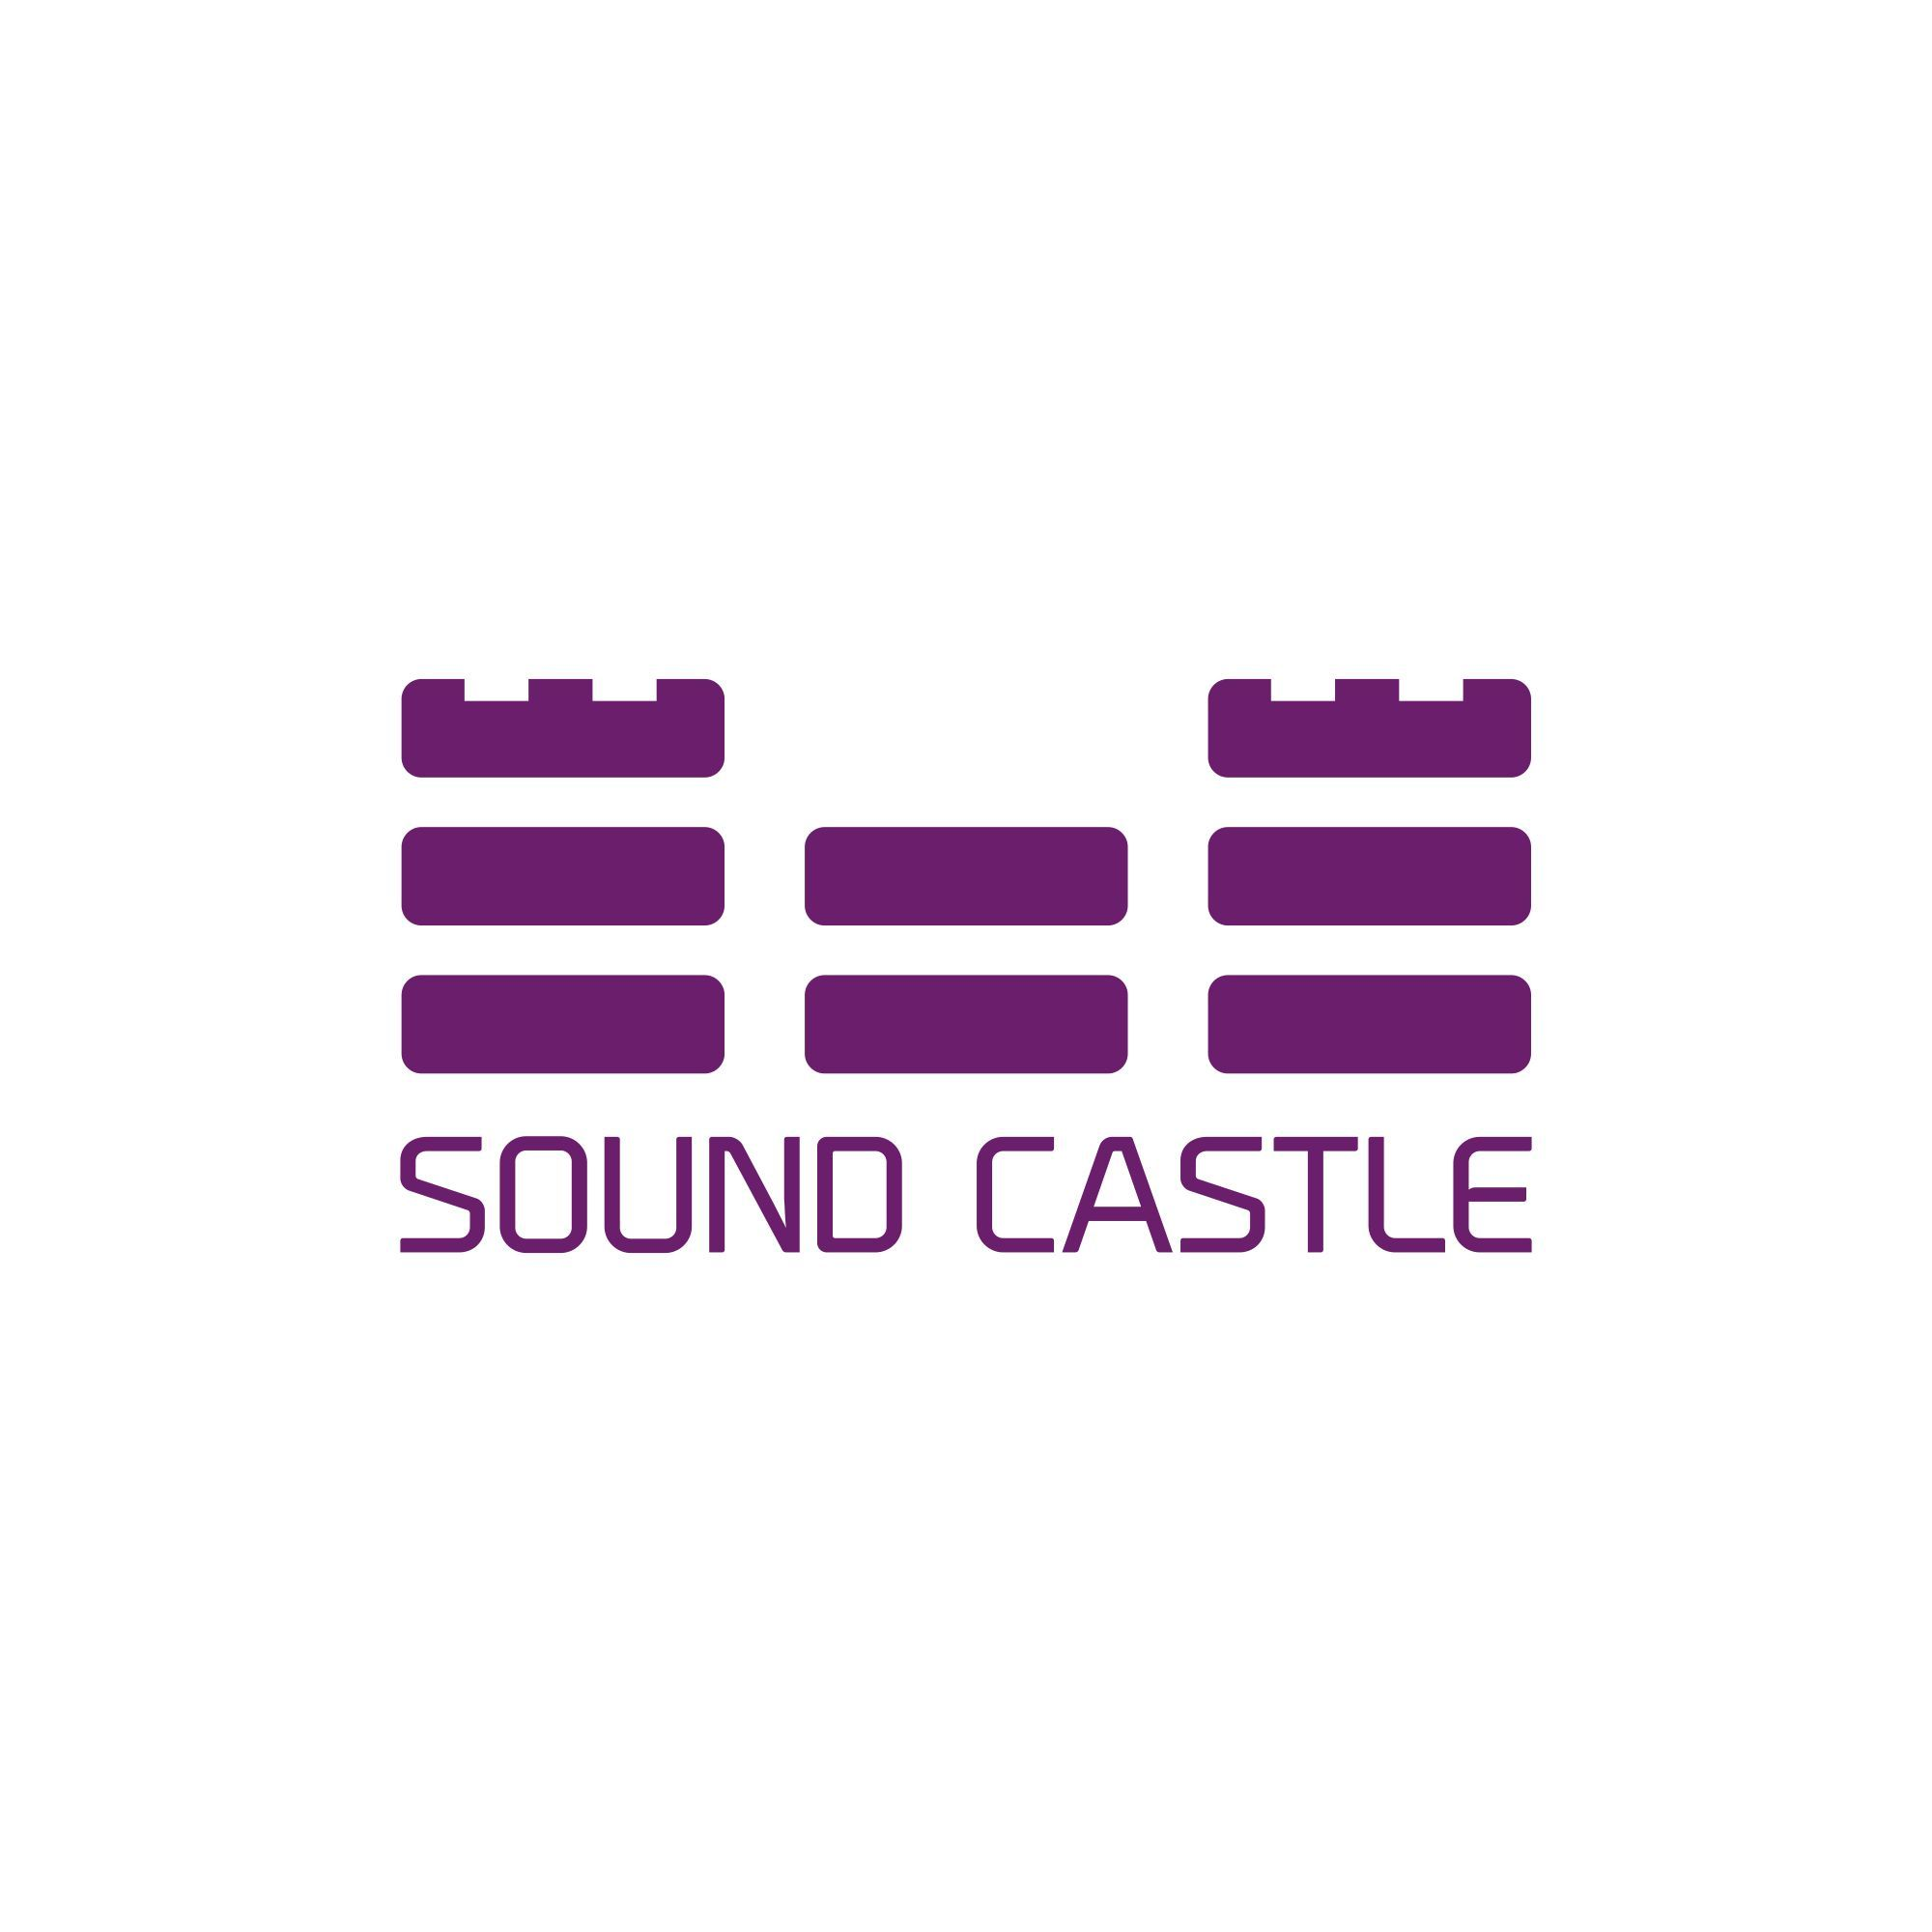 sound castle logo design for an electronic music club this logo rh pinterest com electronics logos list electronic logos images